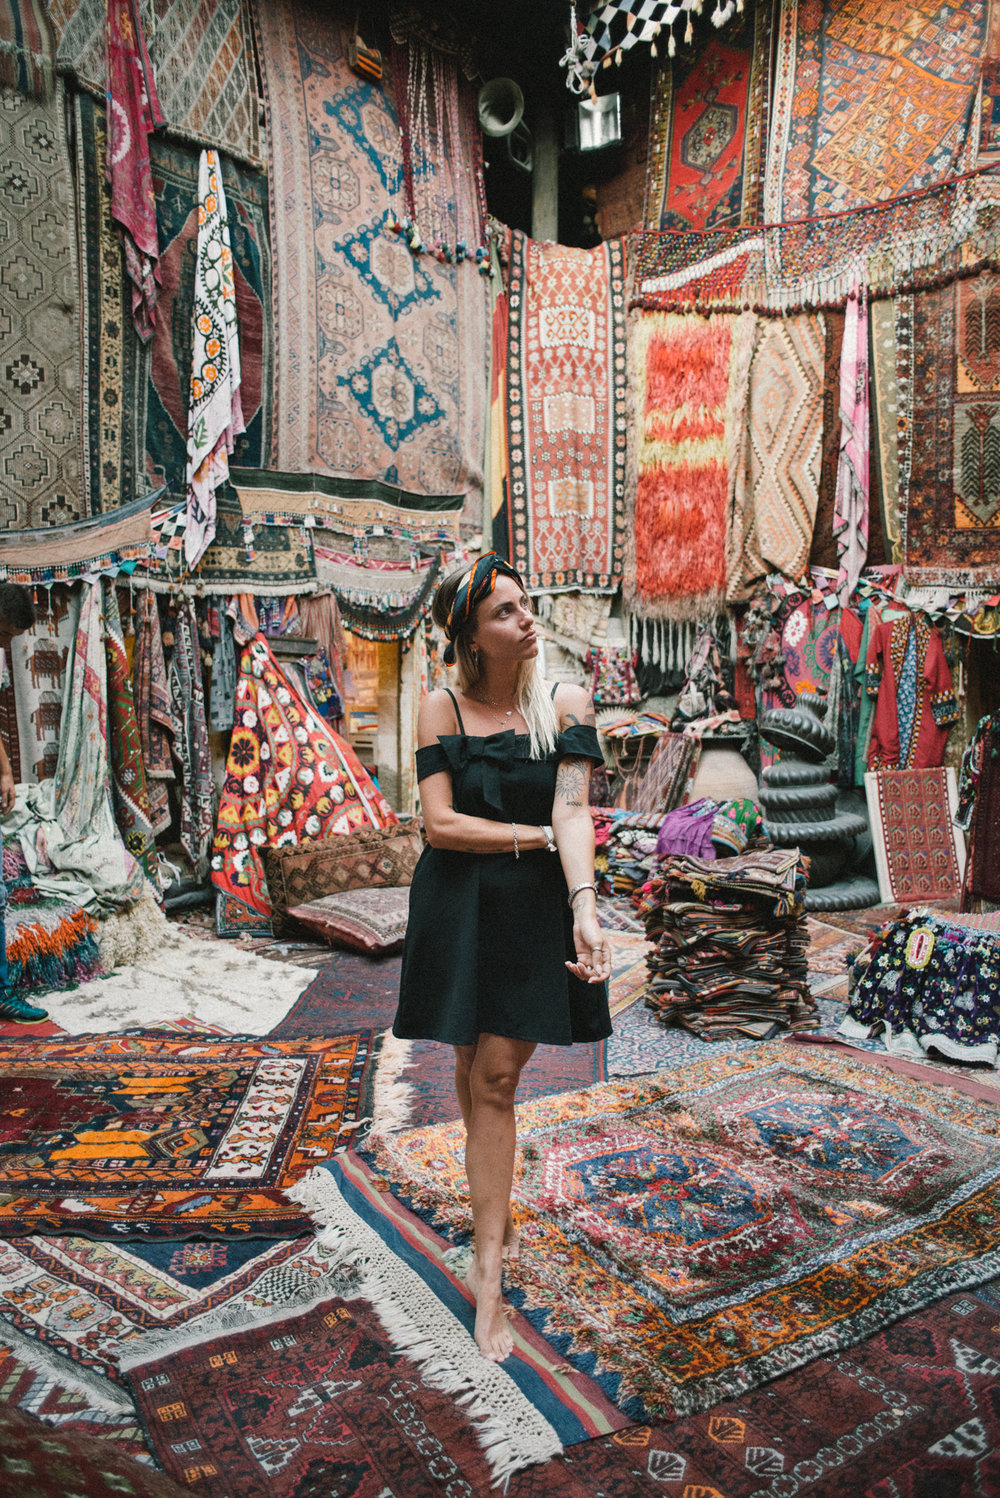 Consciously Connected Travel  -  Culturally Connected Experiences  - Travel - Solana Rei - Nadia Azmy - Samanta Katz- CC Journal  - Istanbul, Turkey